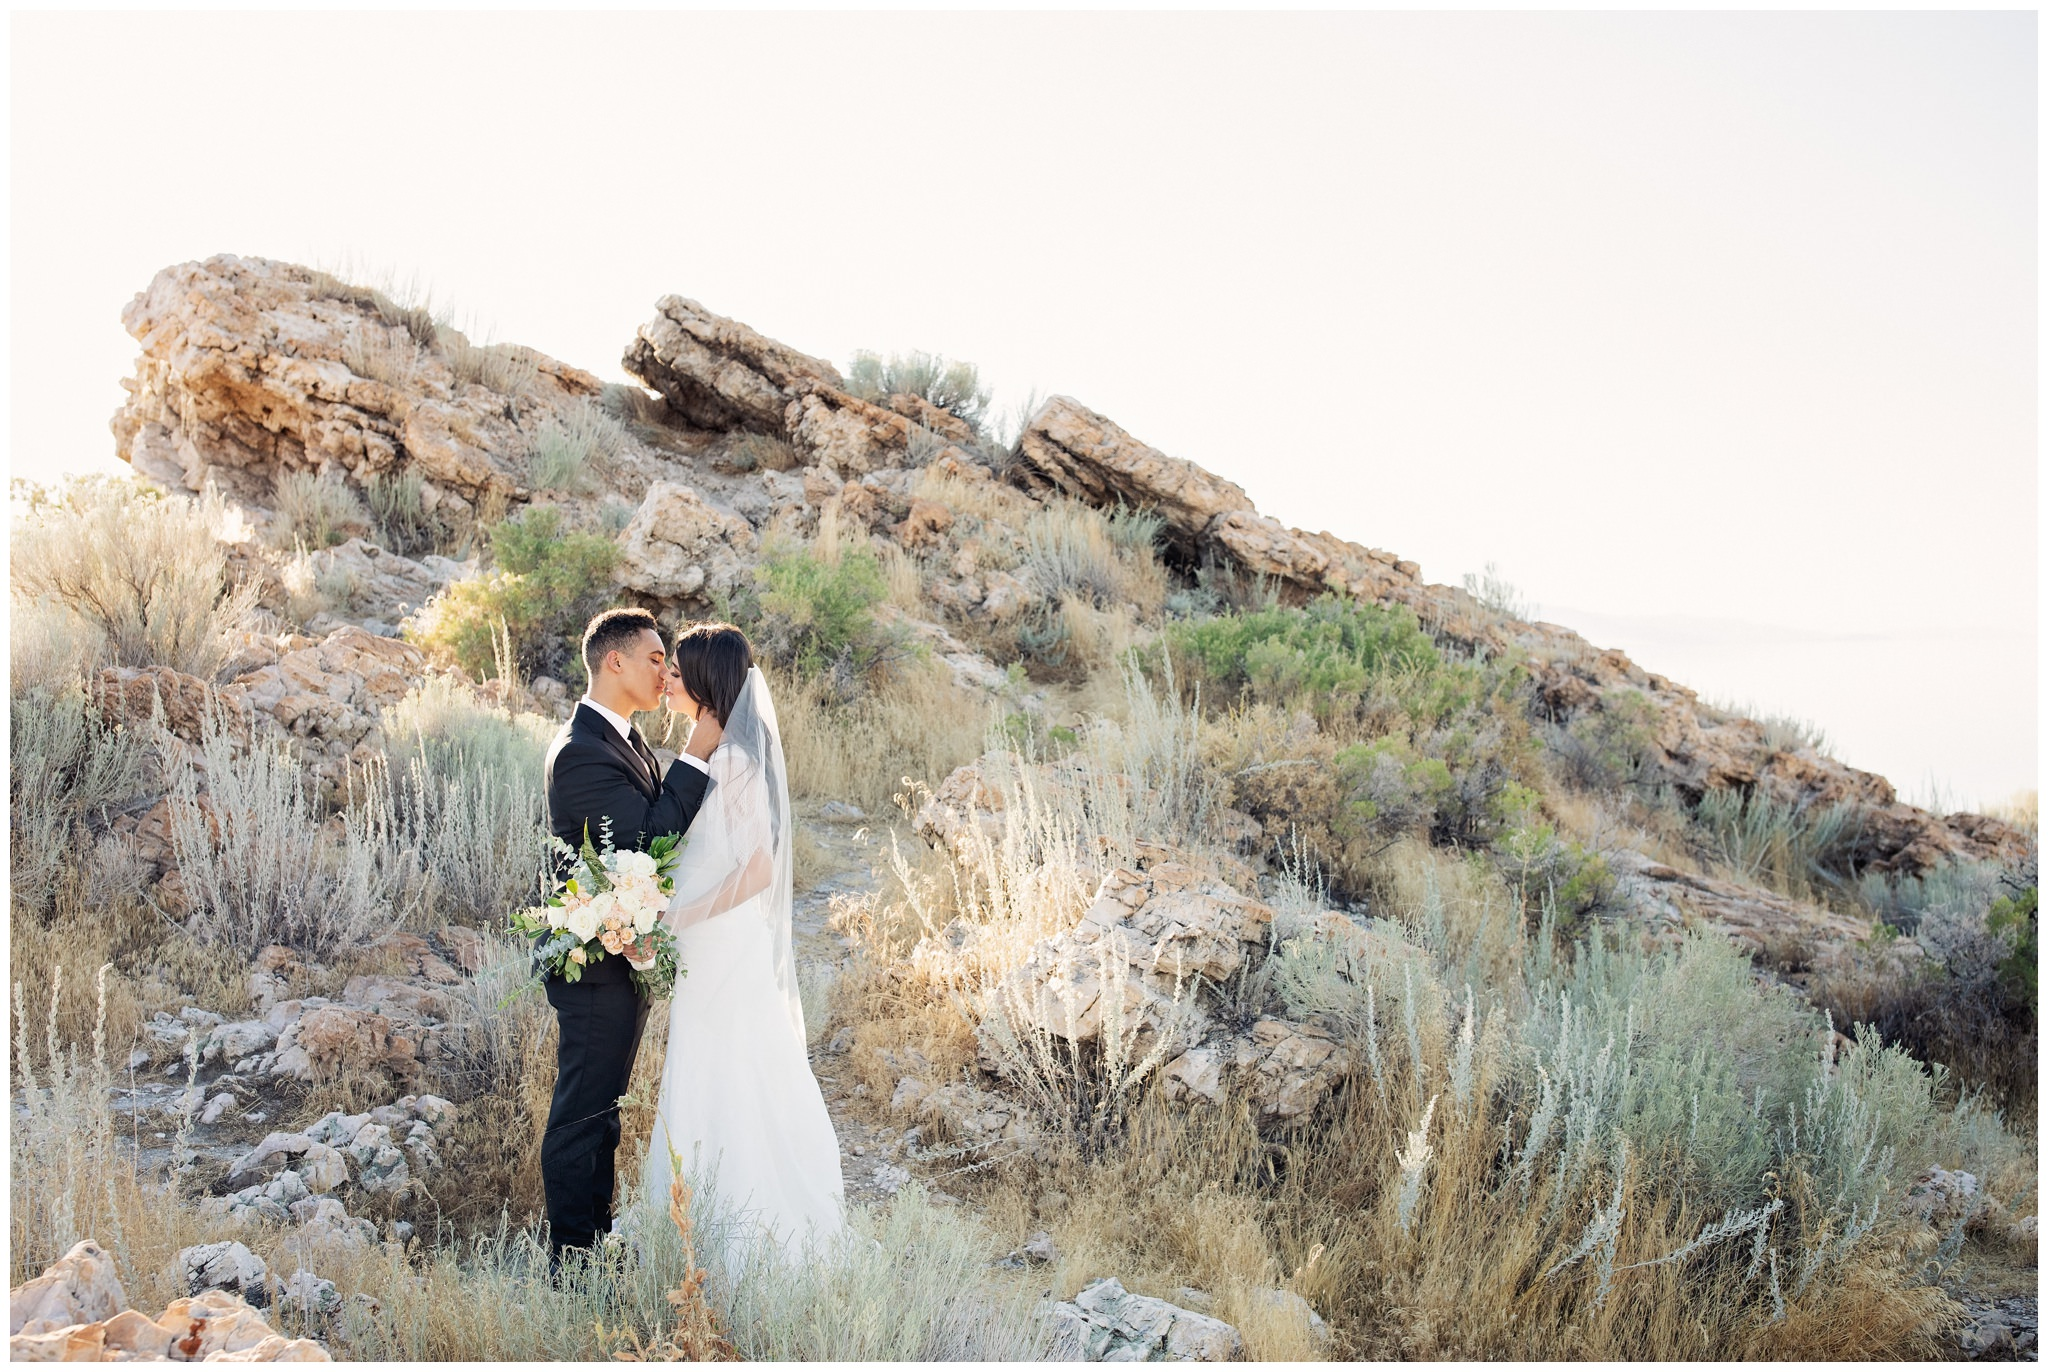 Antelope Island pictures of bride and groom near rocks and island